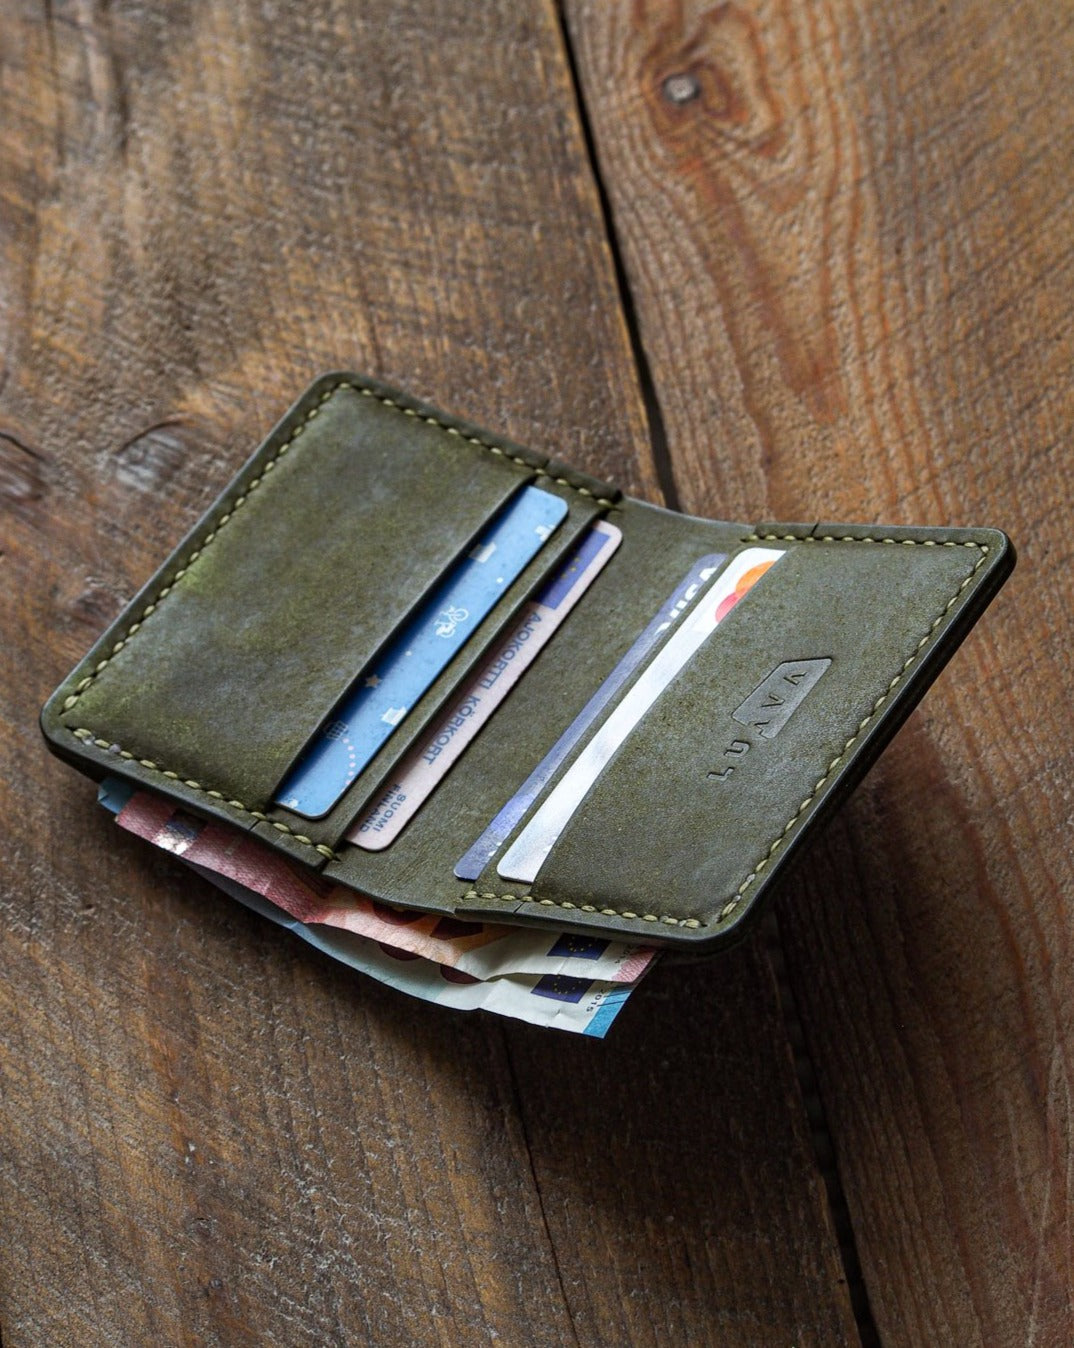 Luava handmade leather wallet NERO pine card holder cardholder handcrafted pueblo olive front open in use angle